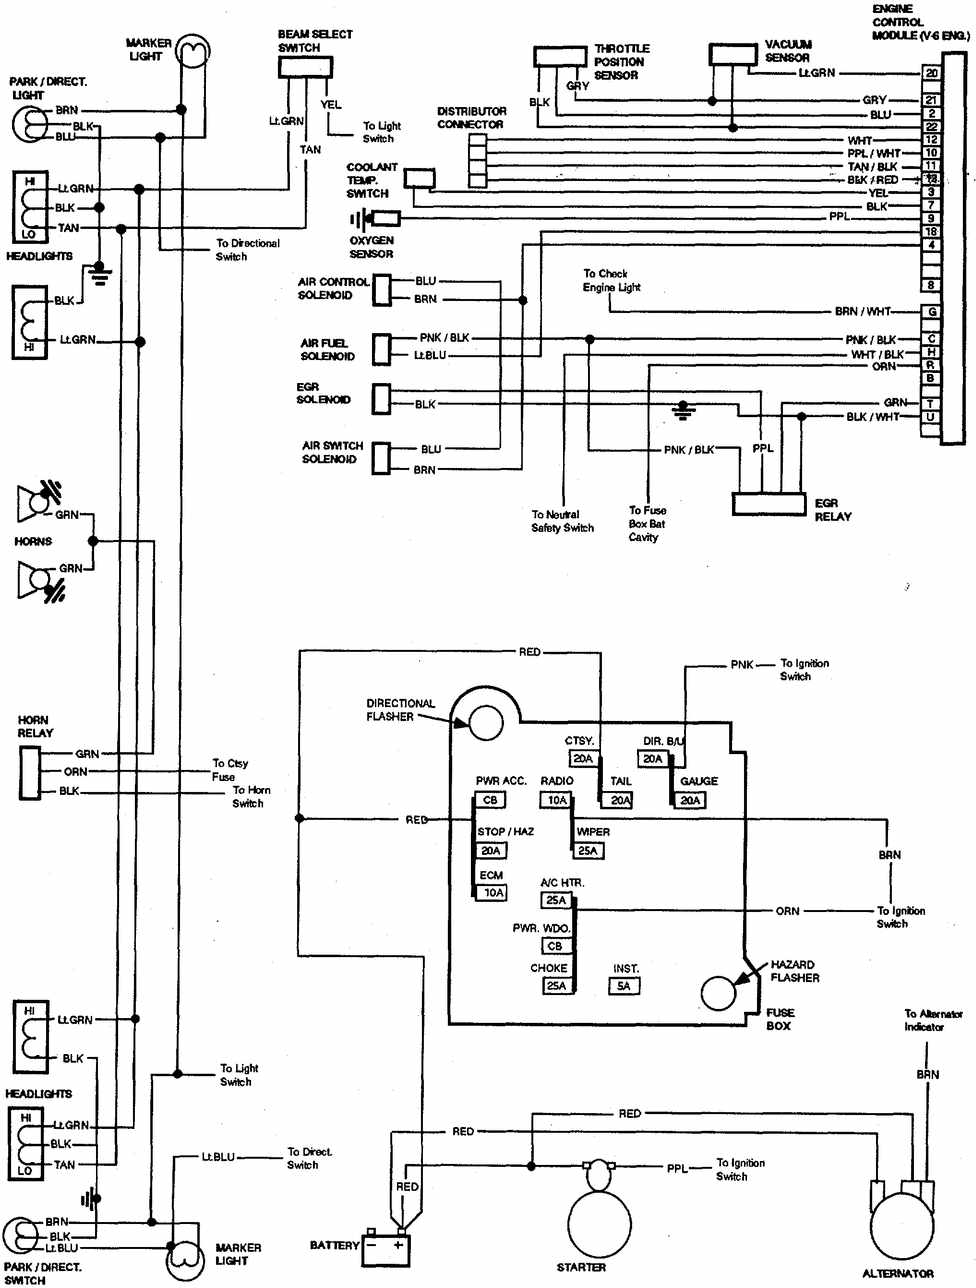 1979 chevrolet deluxe 30 fuse box diagram